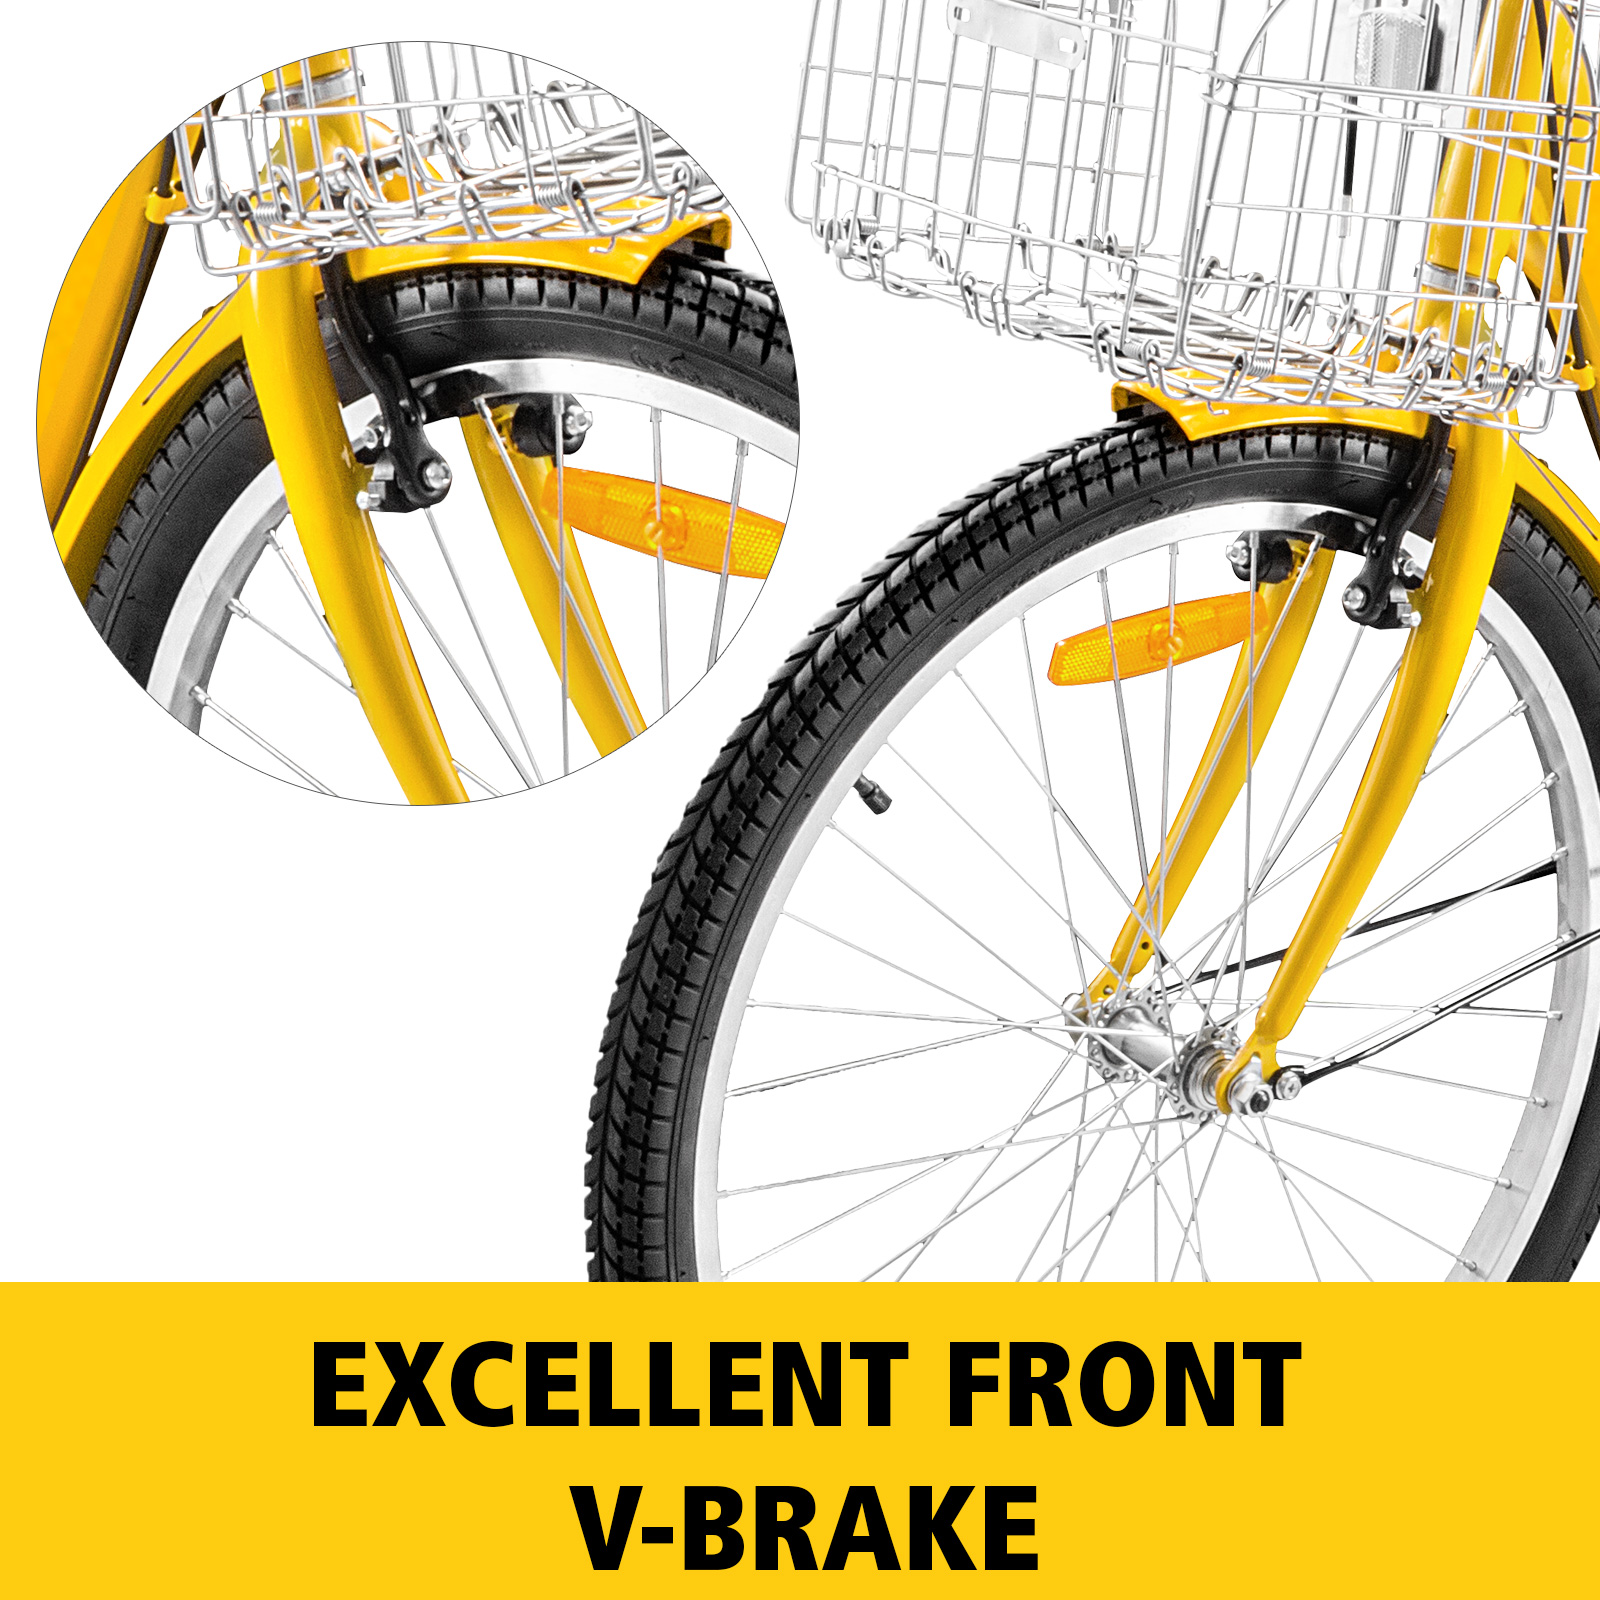 20-24-26-034-Adult-Tricycle-1-7-Speed-3-Wheel-For-Shopping-W-Installation-Tools miniature 376